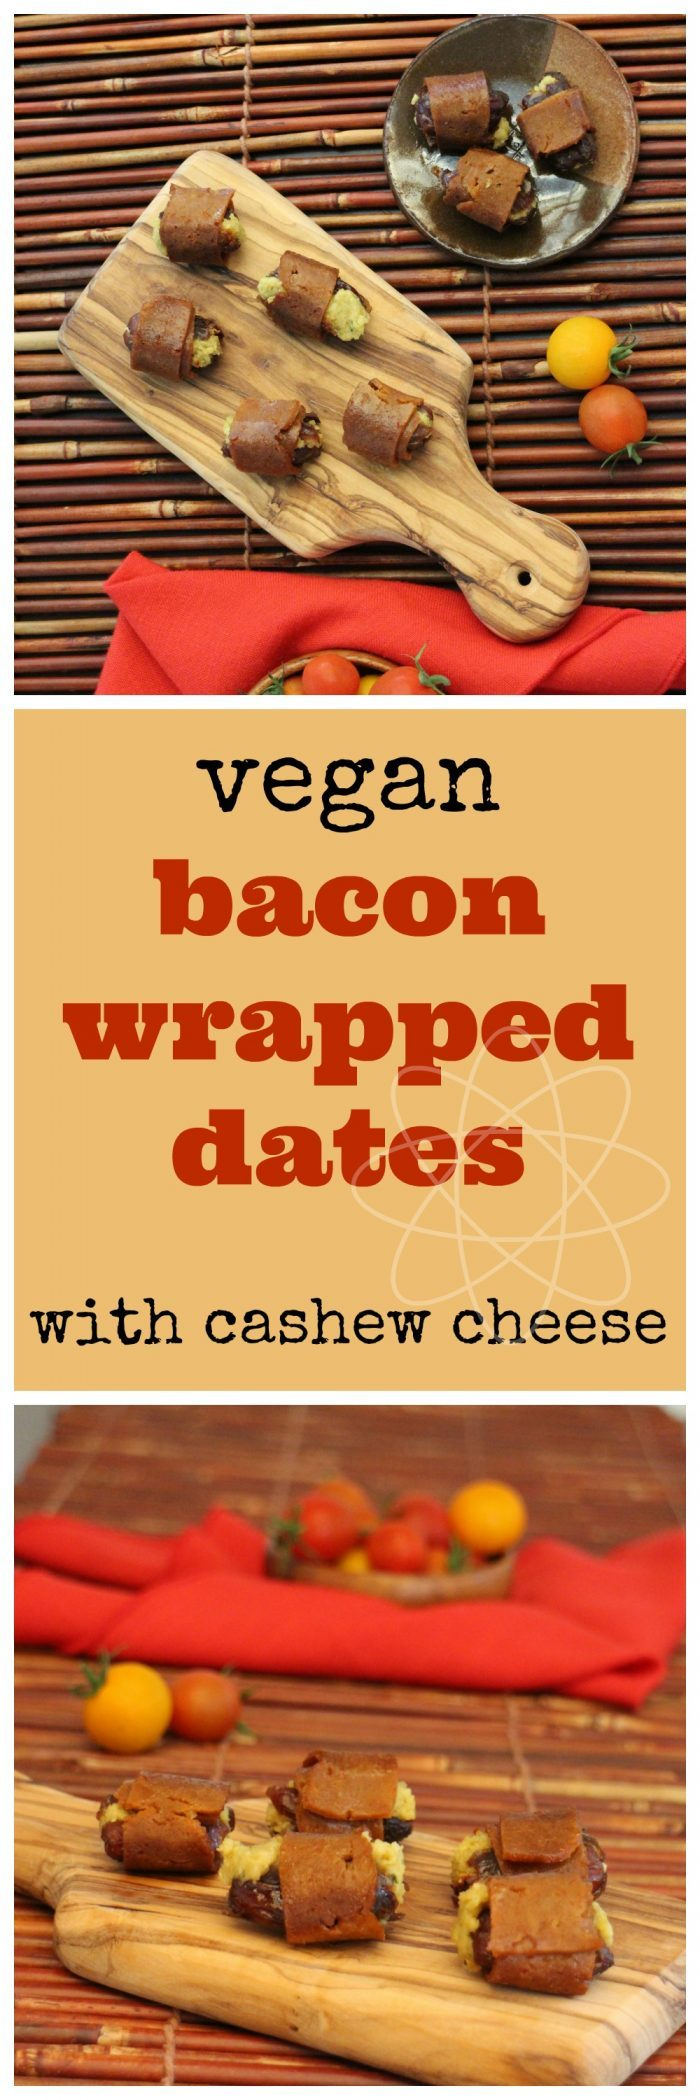 Vegan bacon wrapped dates with cashew cheese: A deliciously easy vegan appetizer | cadryskitchen.com